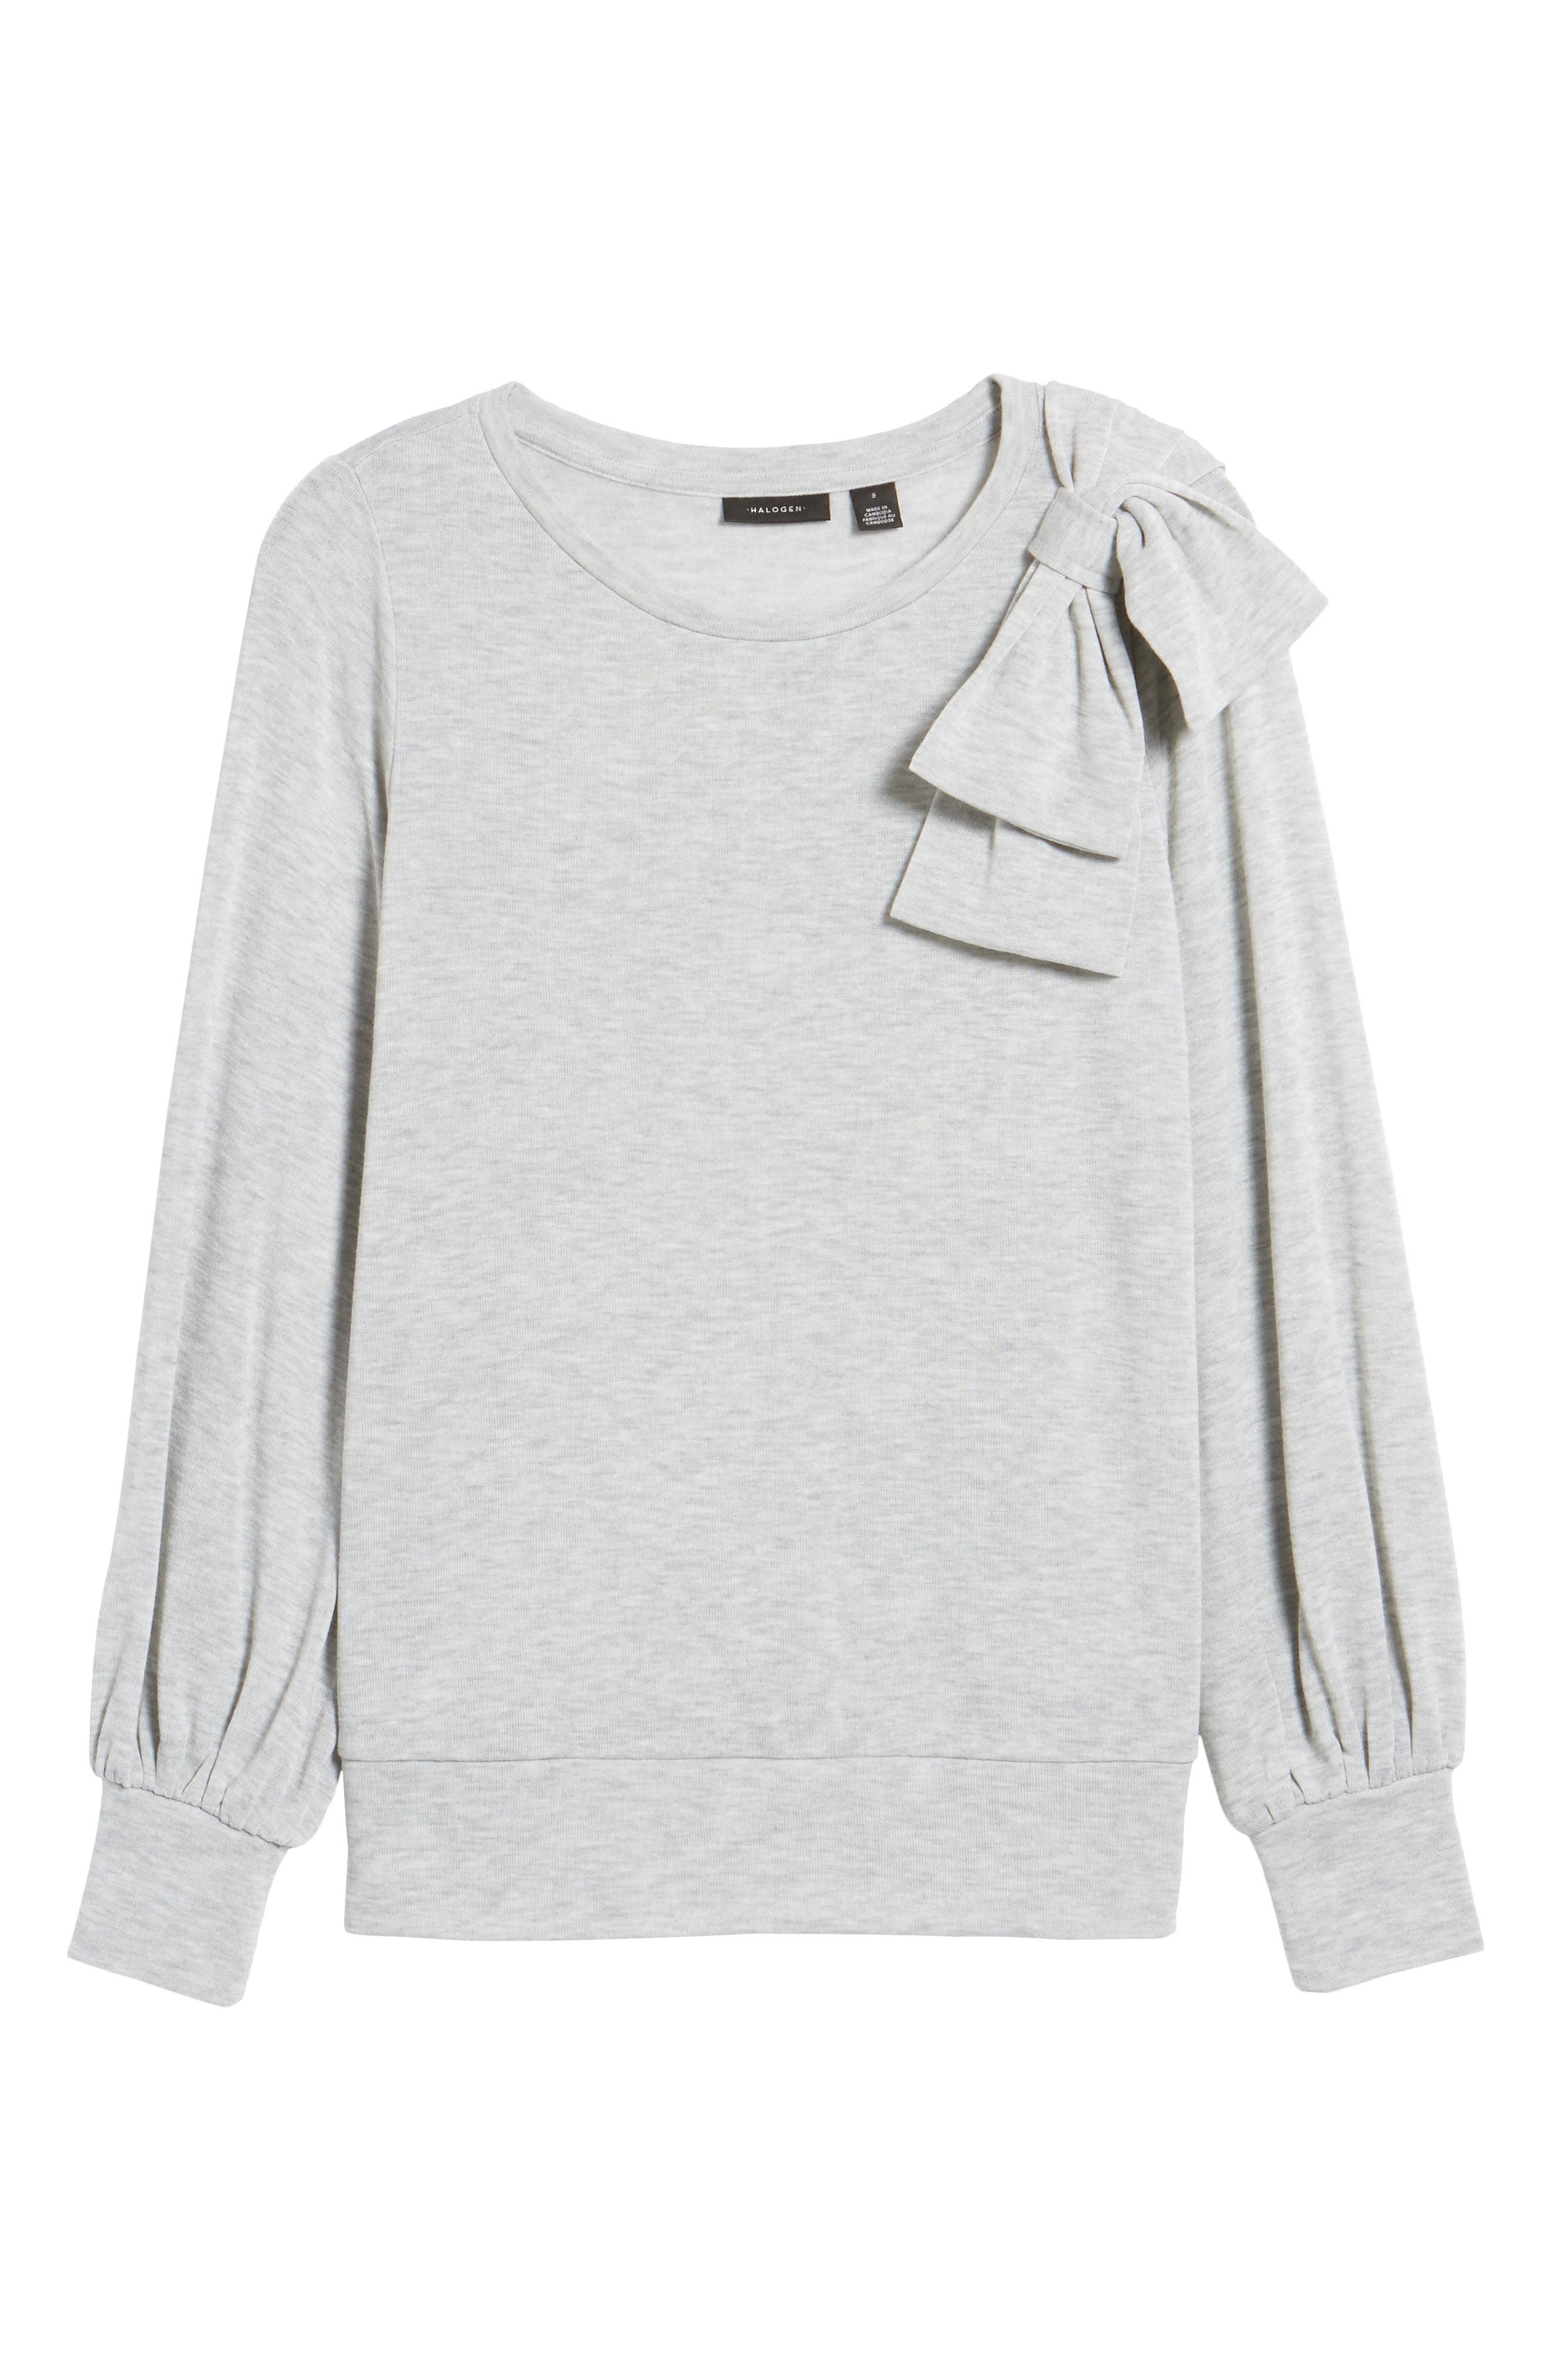 Bow Knit Sweatshirt,                             Alternate thumbnail 6, color,                             Grey Heather